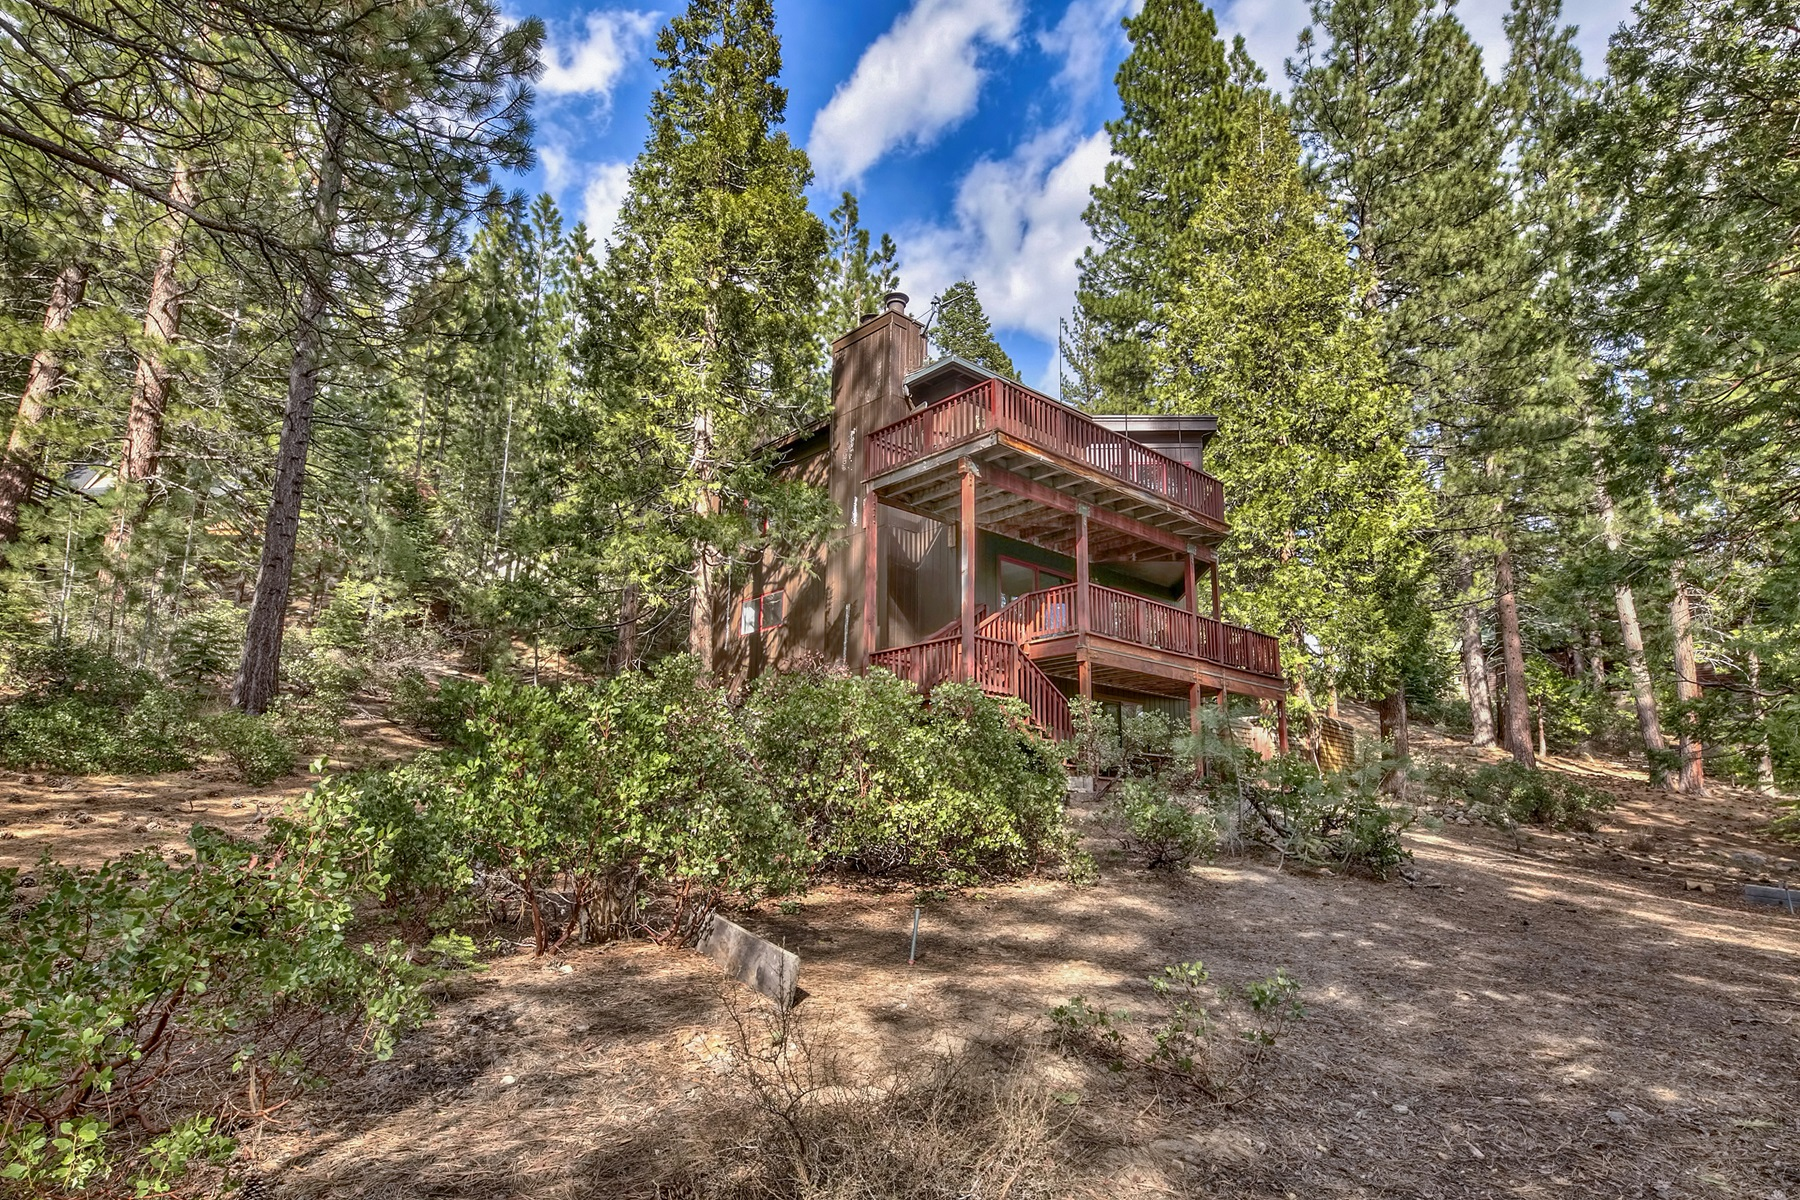 Single Family Homes for Active at 521 Sugarpine Drive, Incline Village, Nevada 521 Sugarpine Drive Incline Village, Nevada 89451 United States